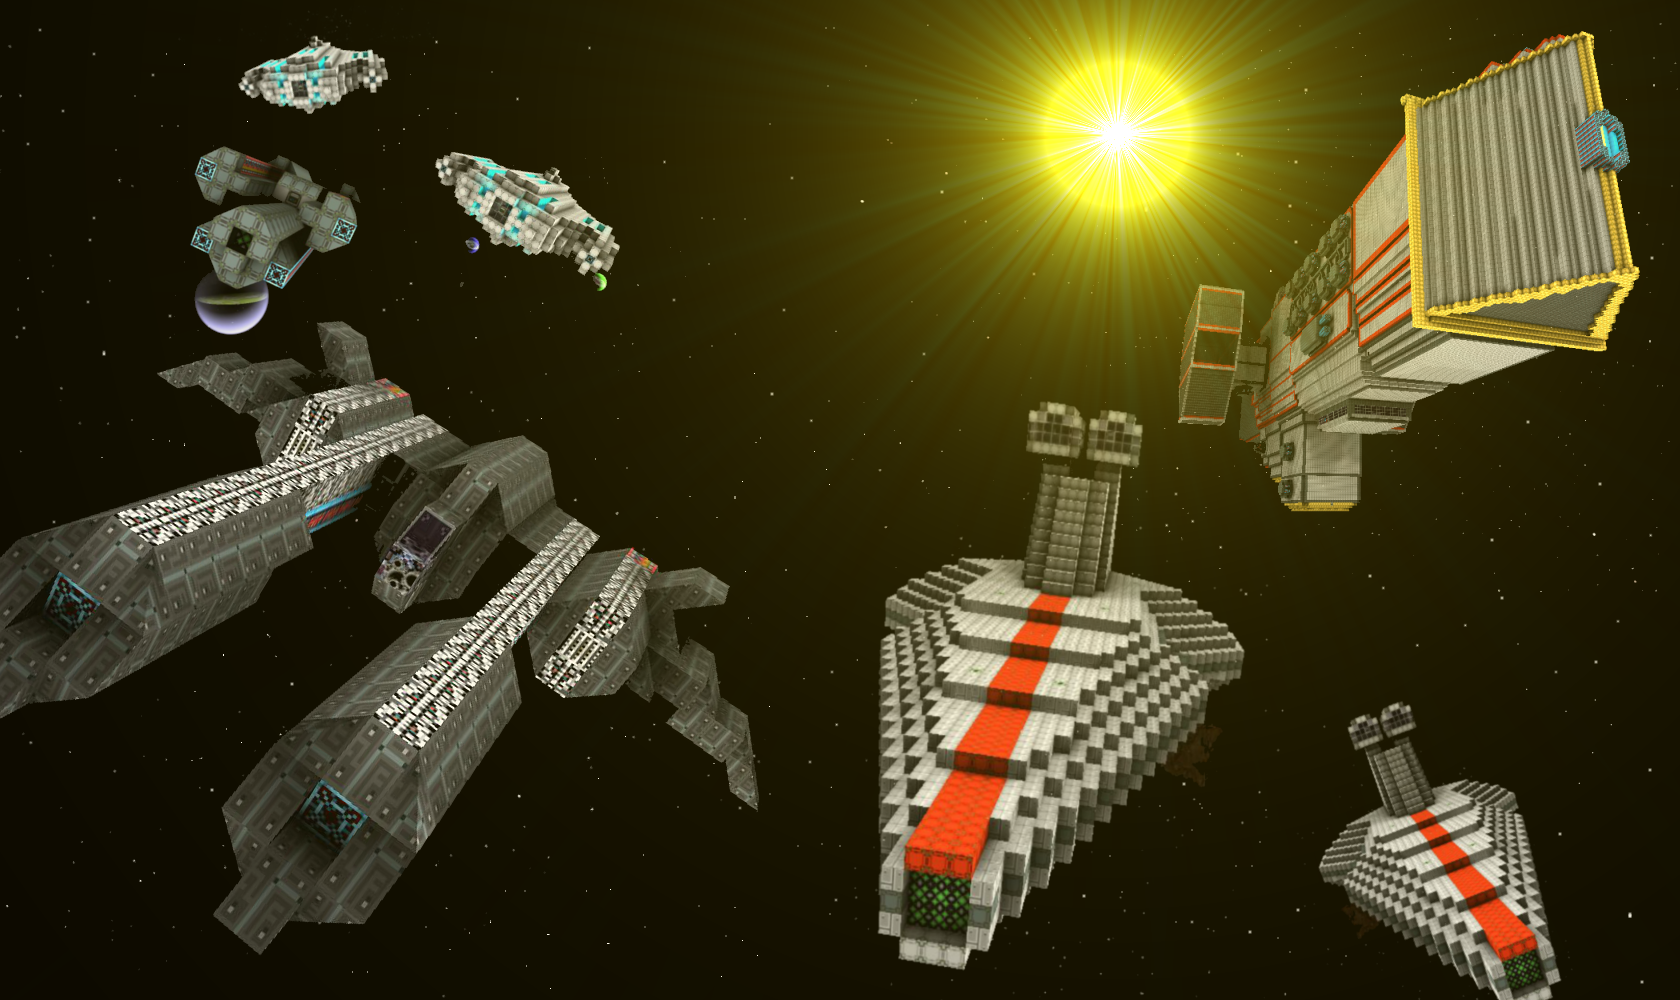 space ship on starmade - photo #14